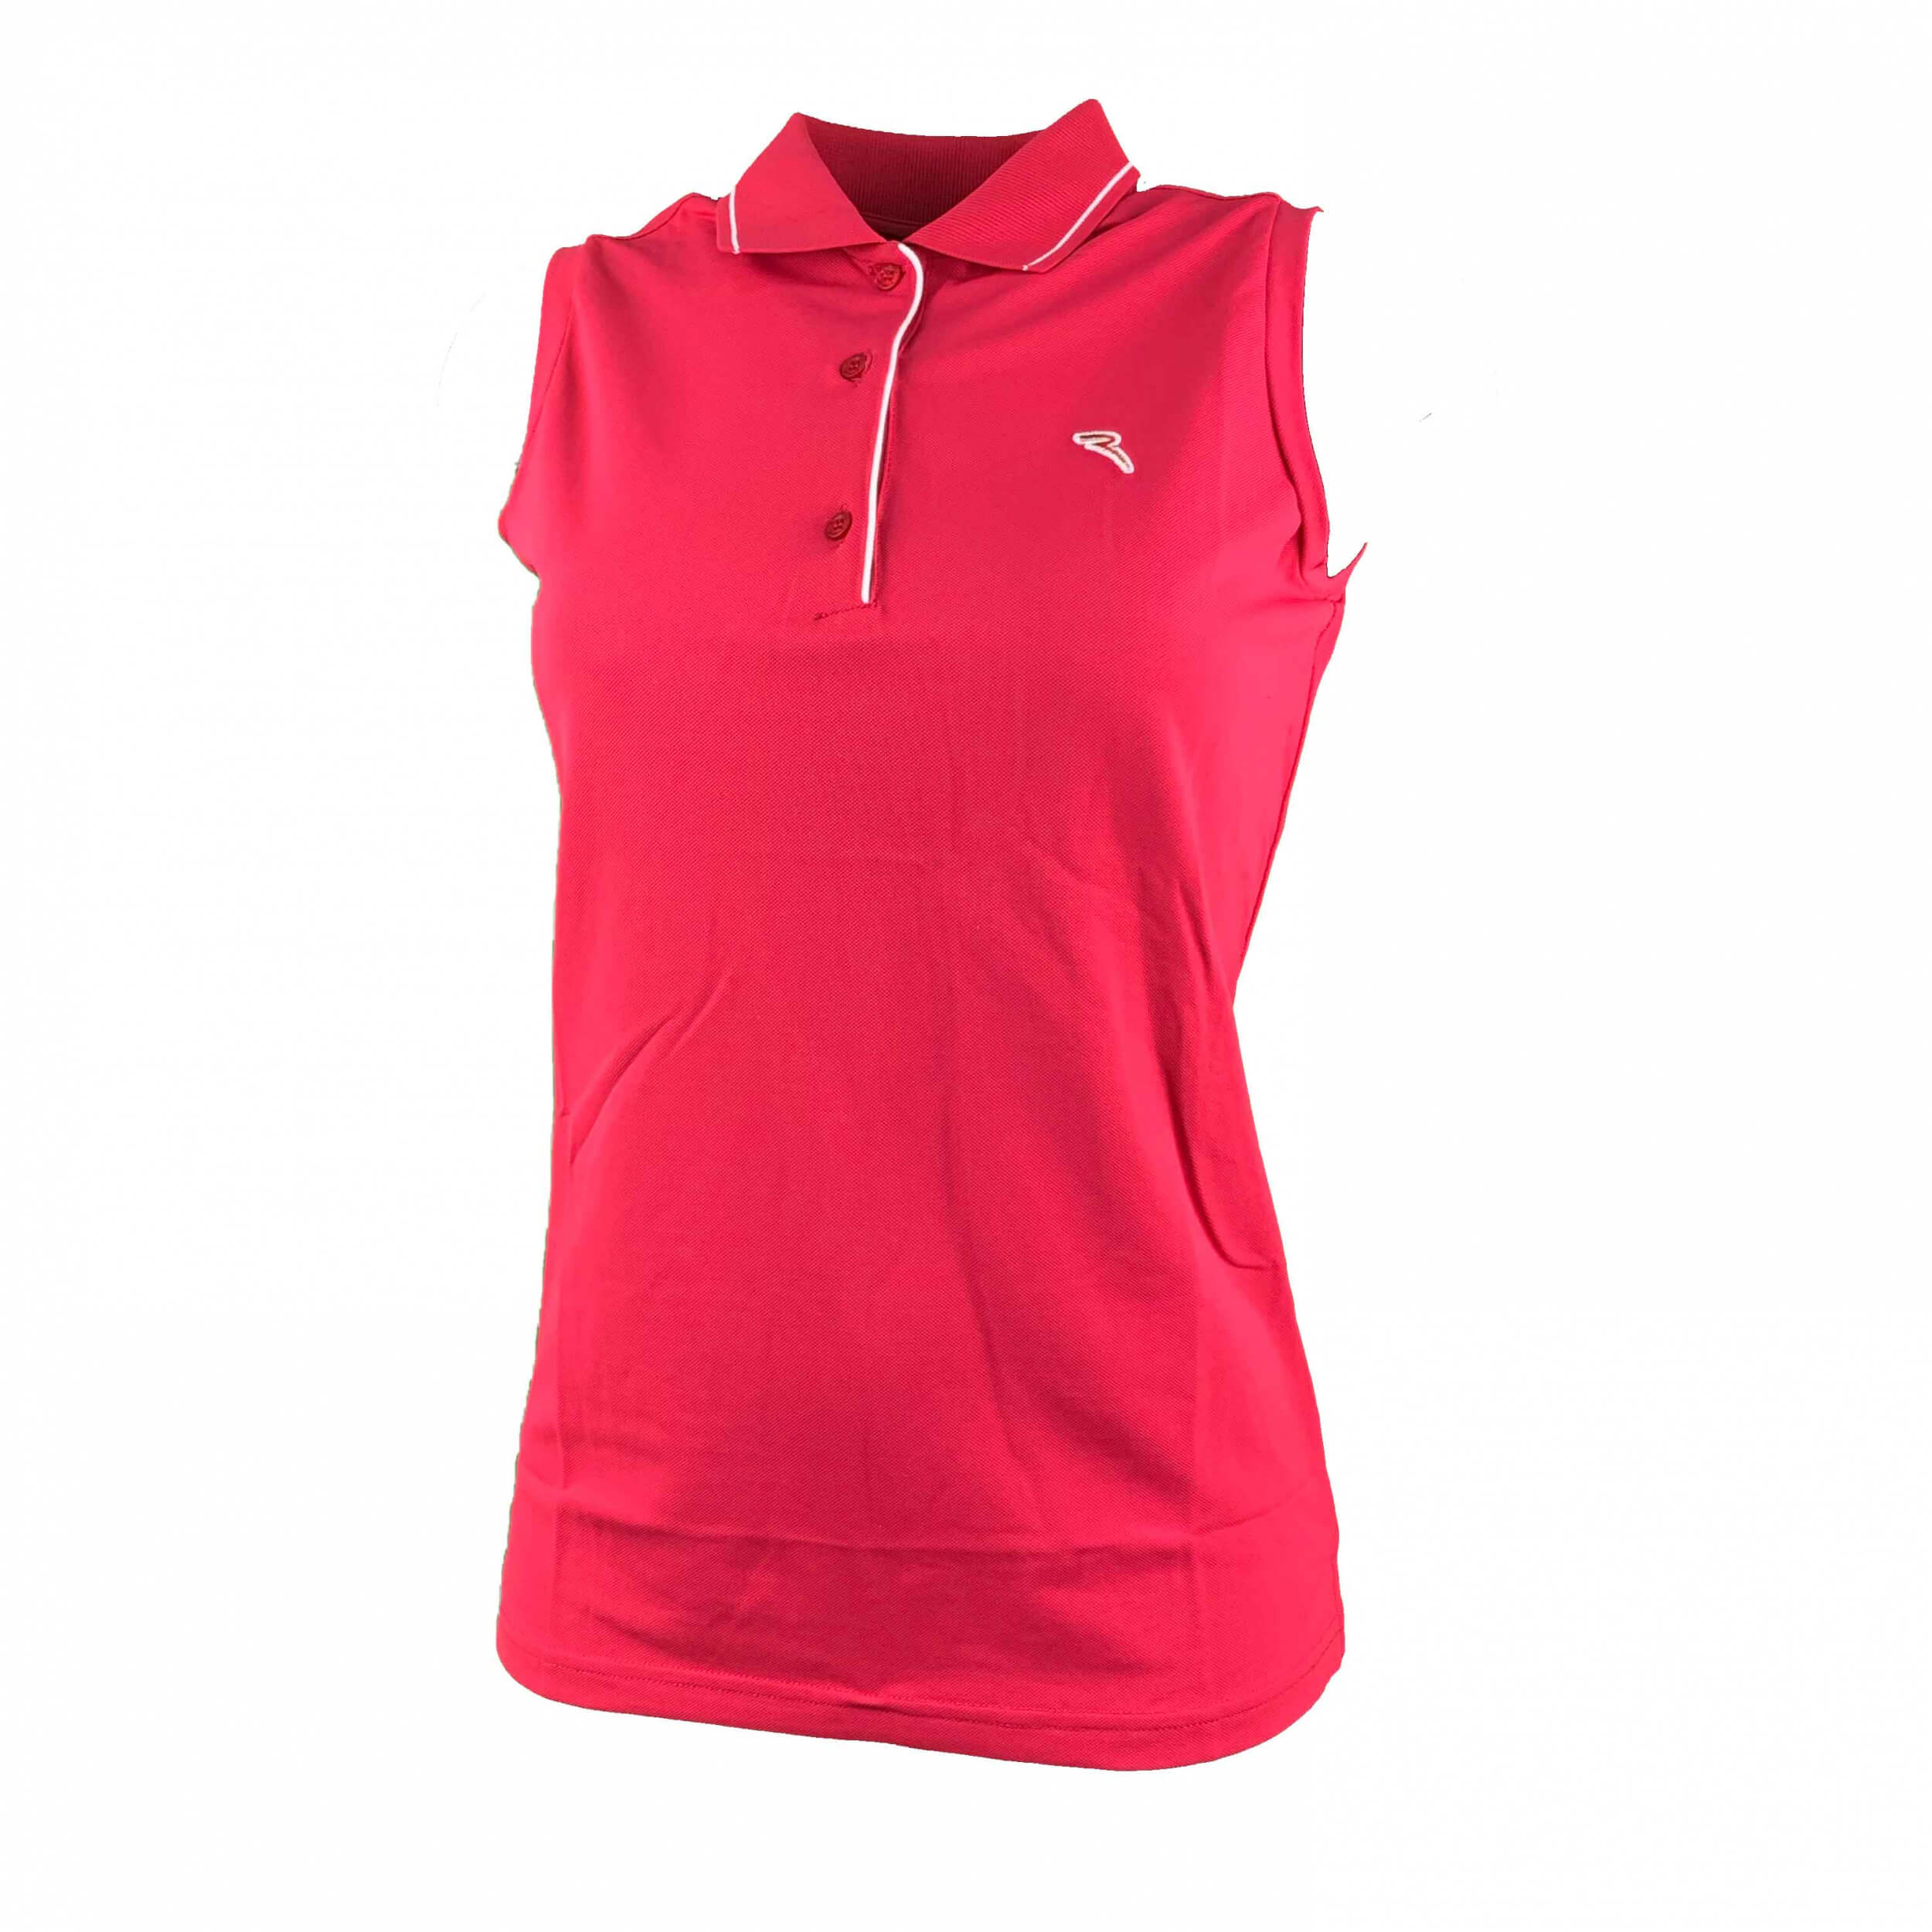 Chervo Damen Polo Top Andrich DRY MATIC himbeere 778